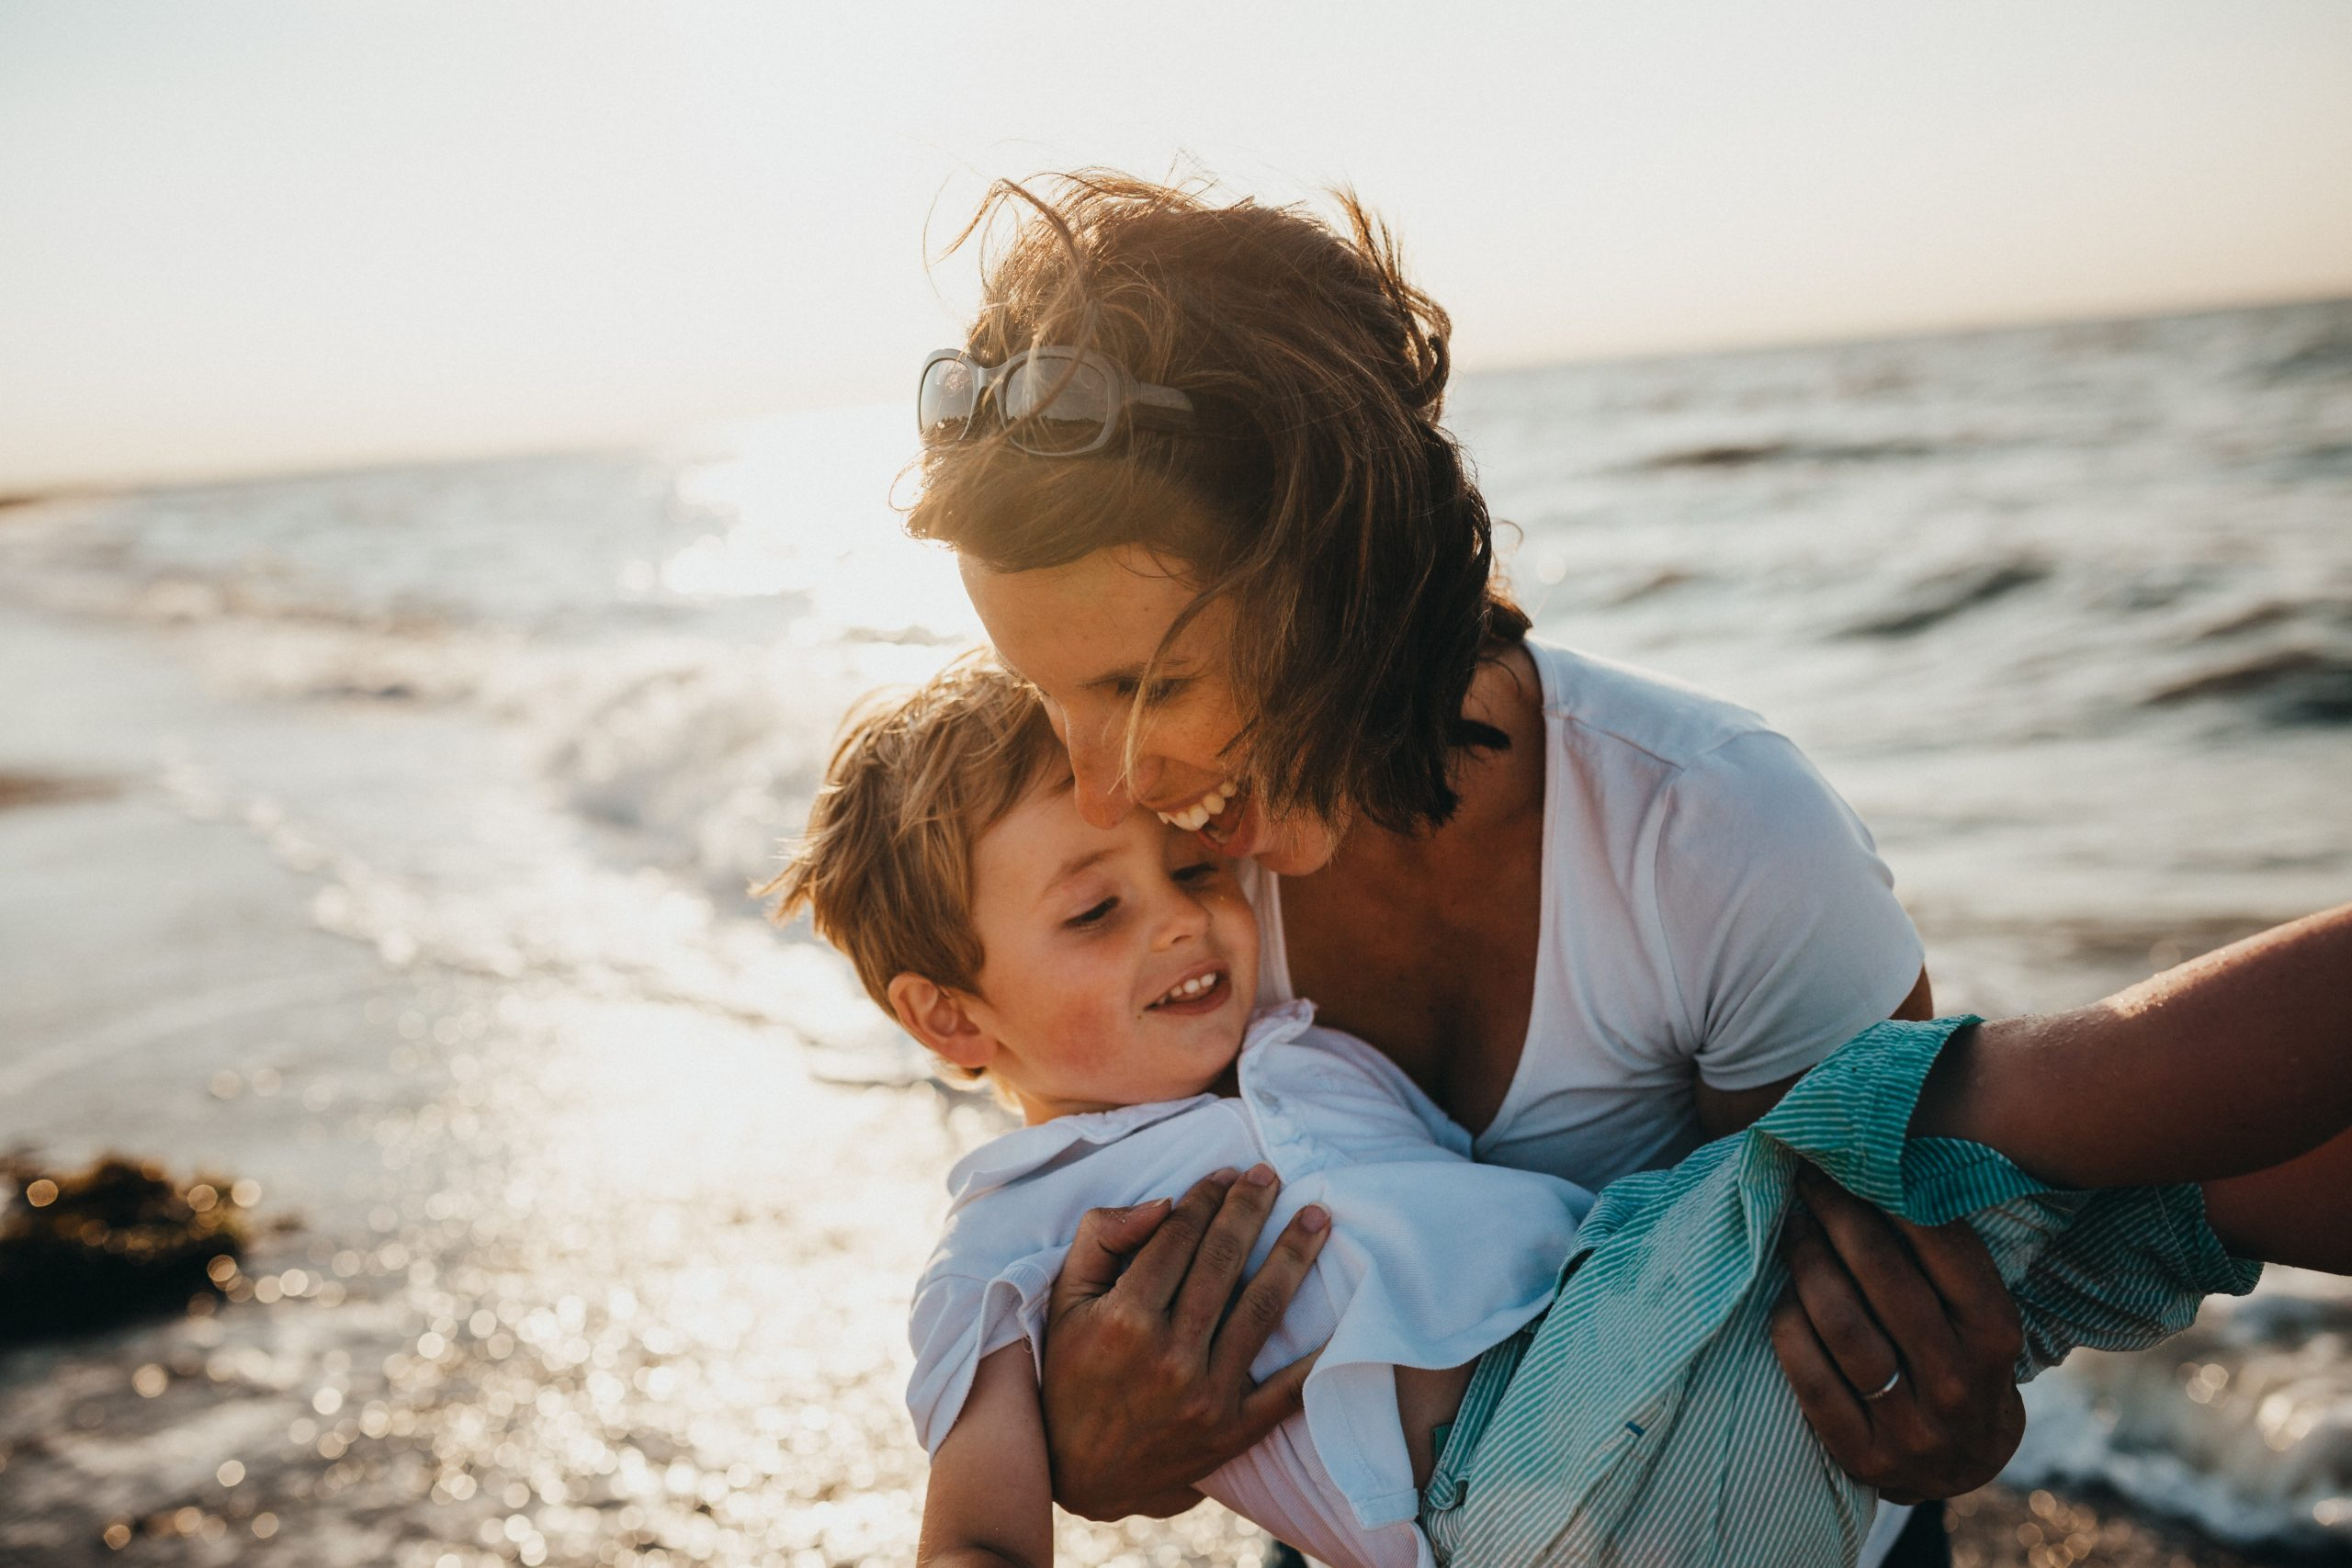 A woman holding a toddler on the beach while smiling